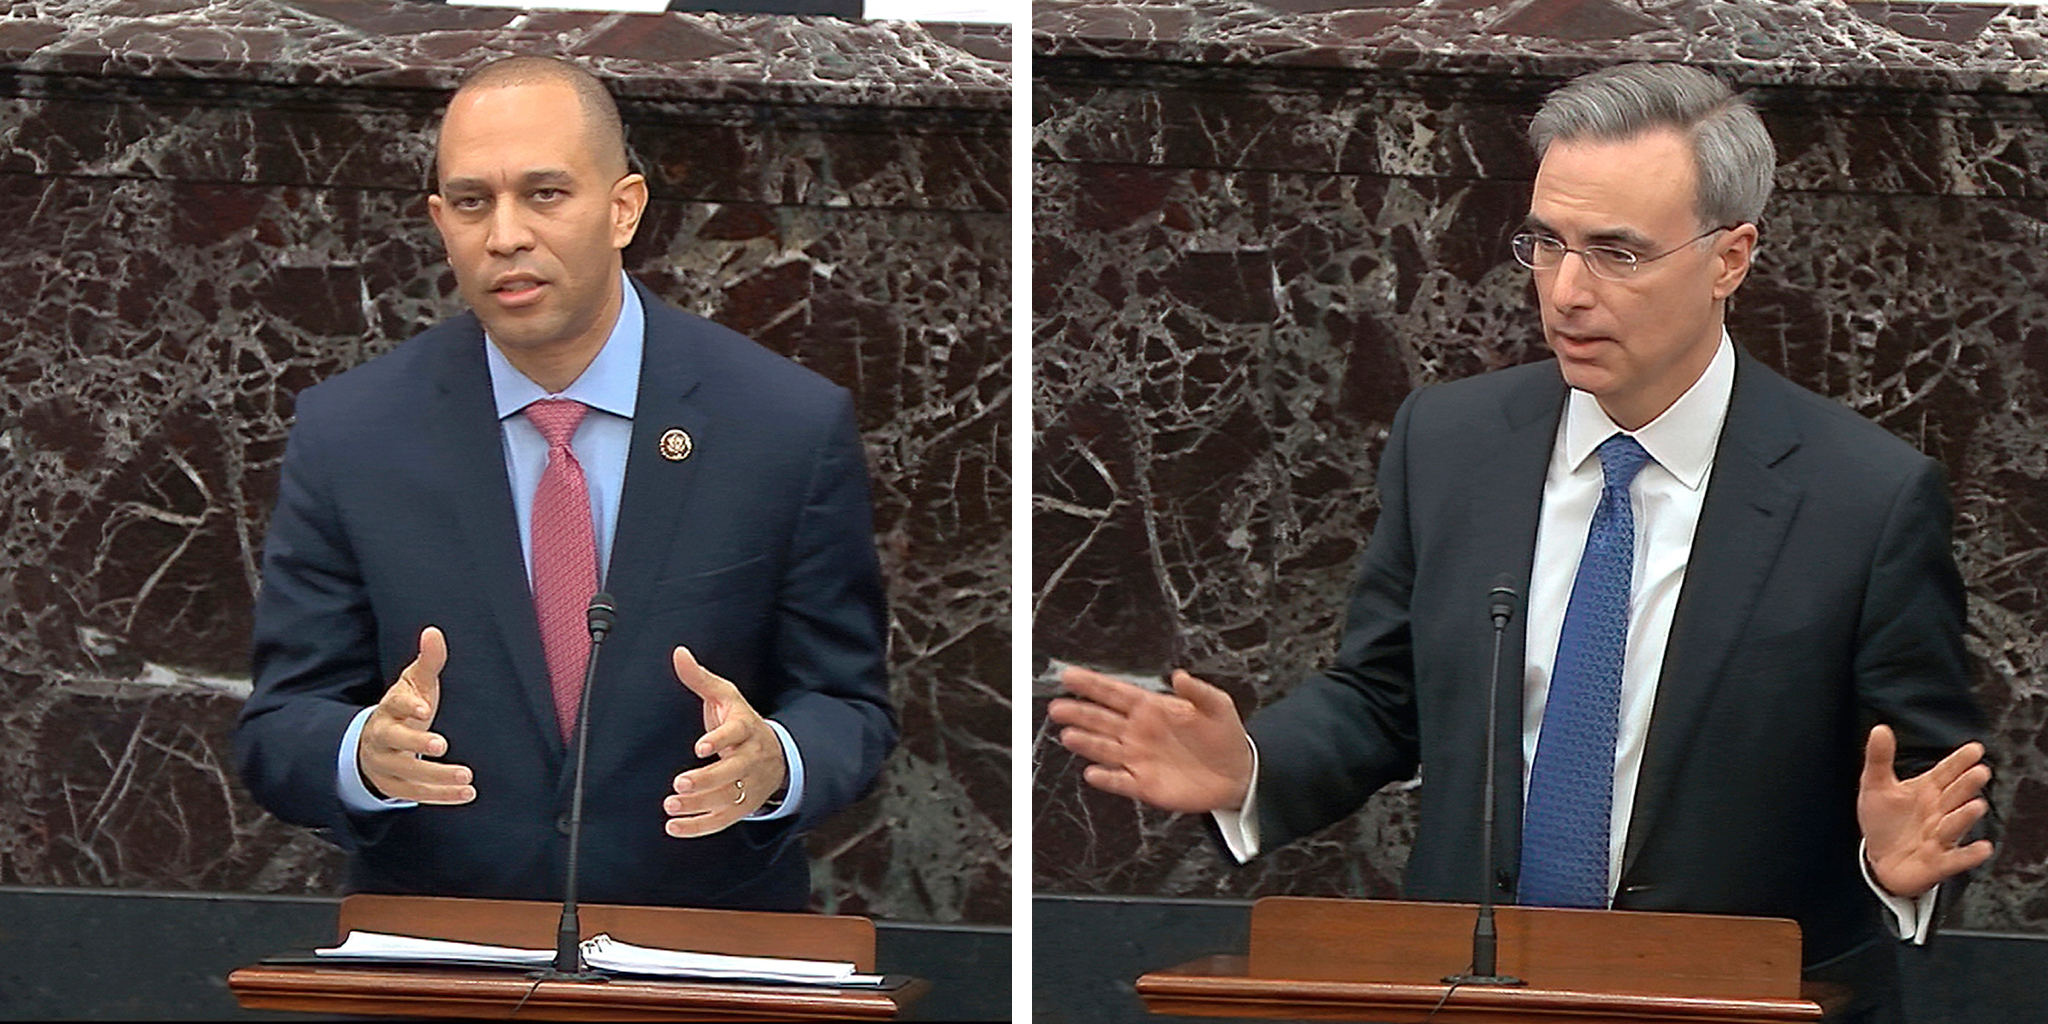 House impeachment manager Rep. Hakeem Jeffries, D-N.Y. and White House counsel Pat Cipollone.